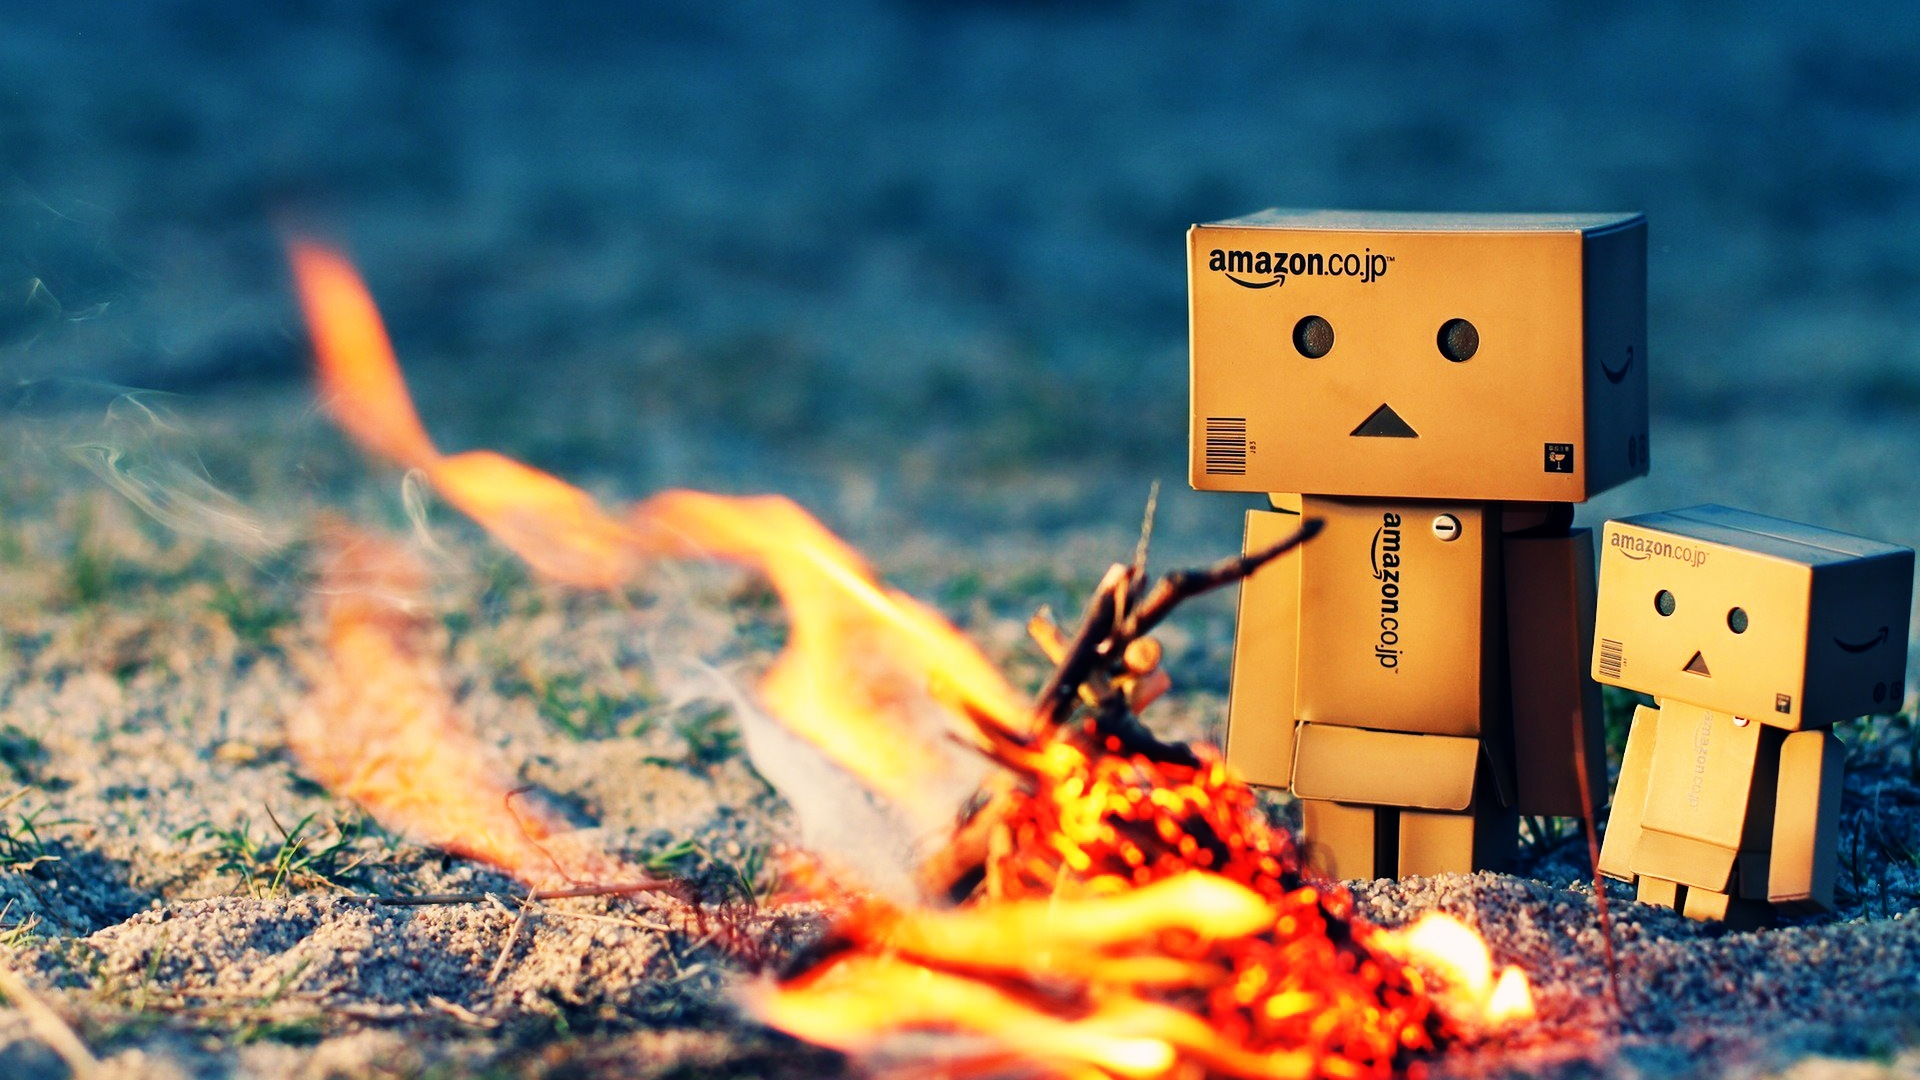 danbo-warming-fire-wallpapers_27357_1920x1080.jpg